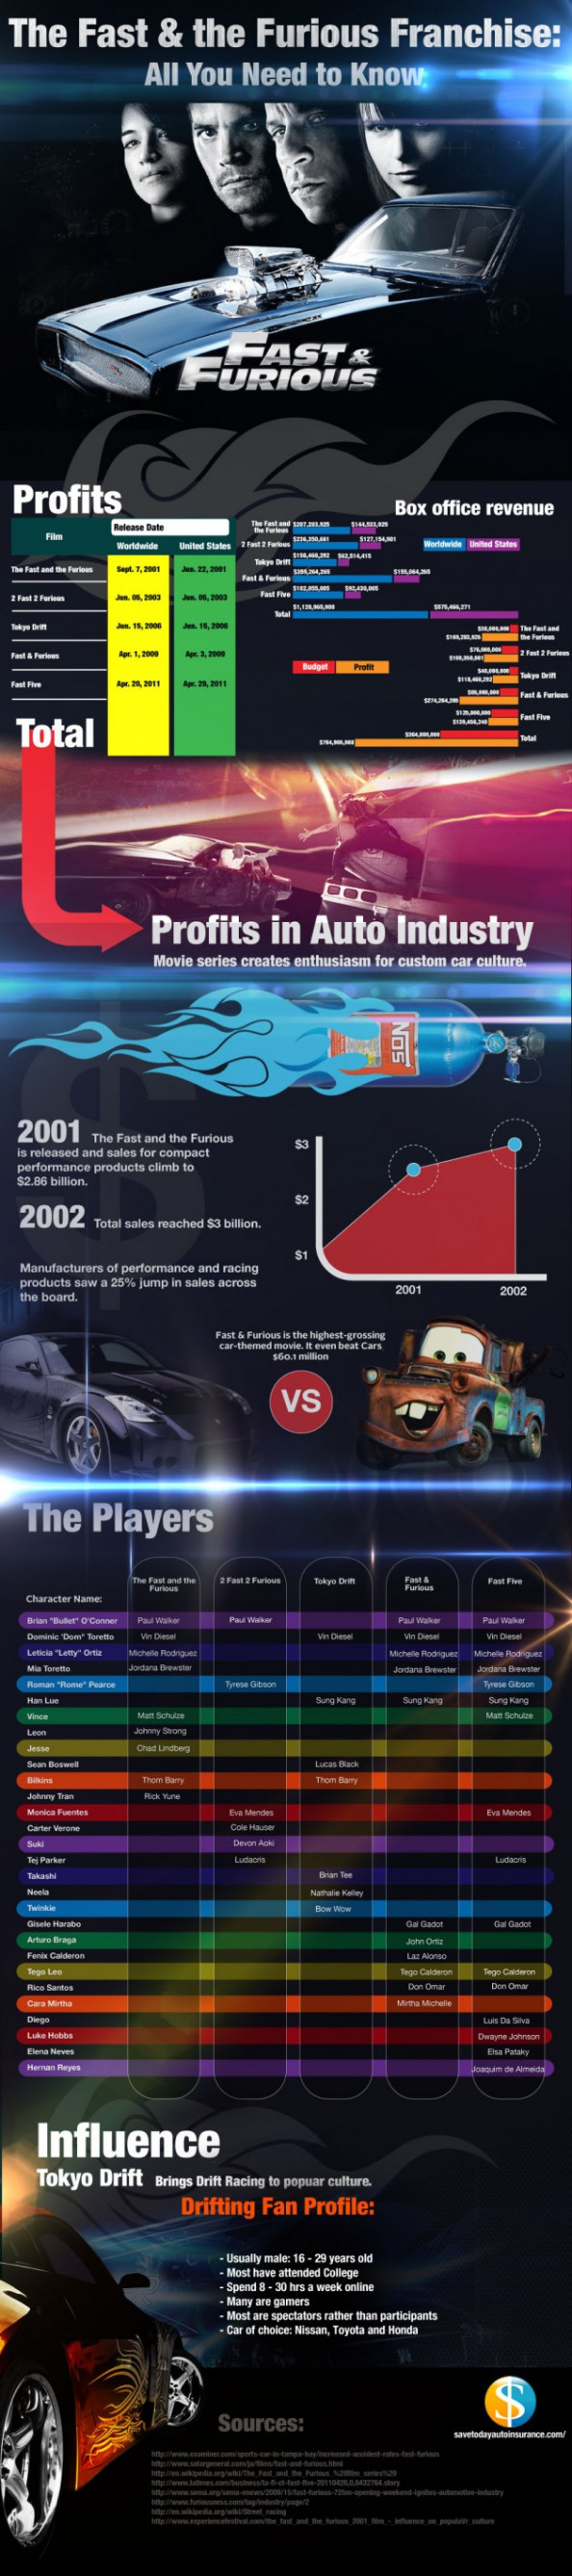 The Fast and the Furious Franchise All You Need to Know Infographic